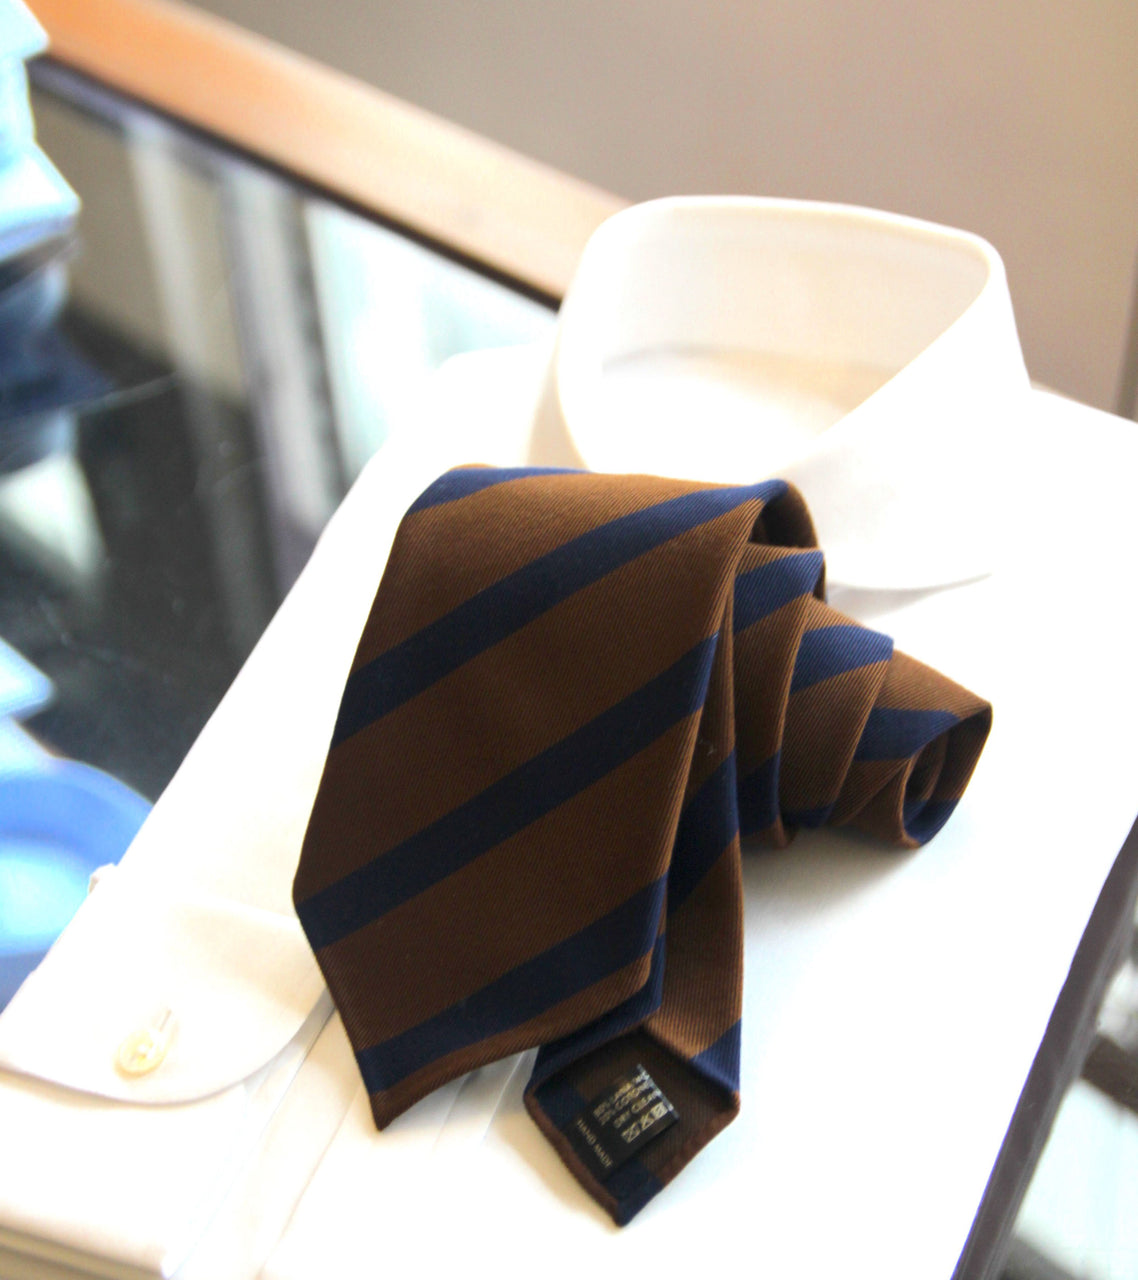 Bryceland's Wool & Cotton Tie 20248-8